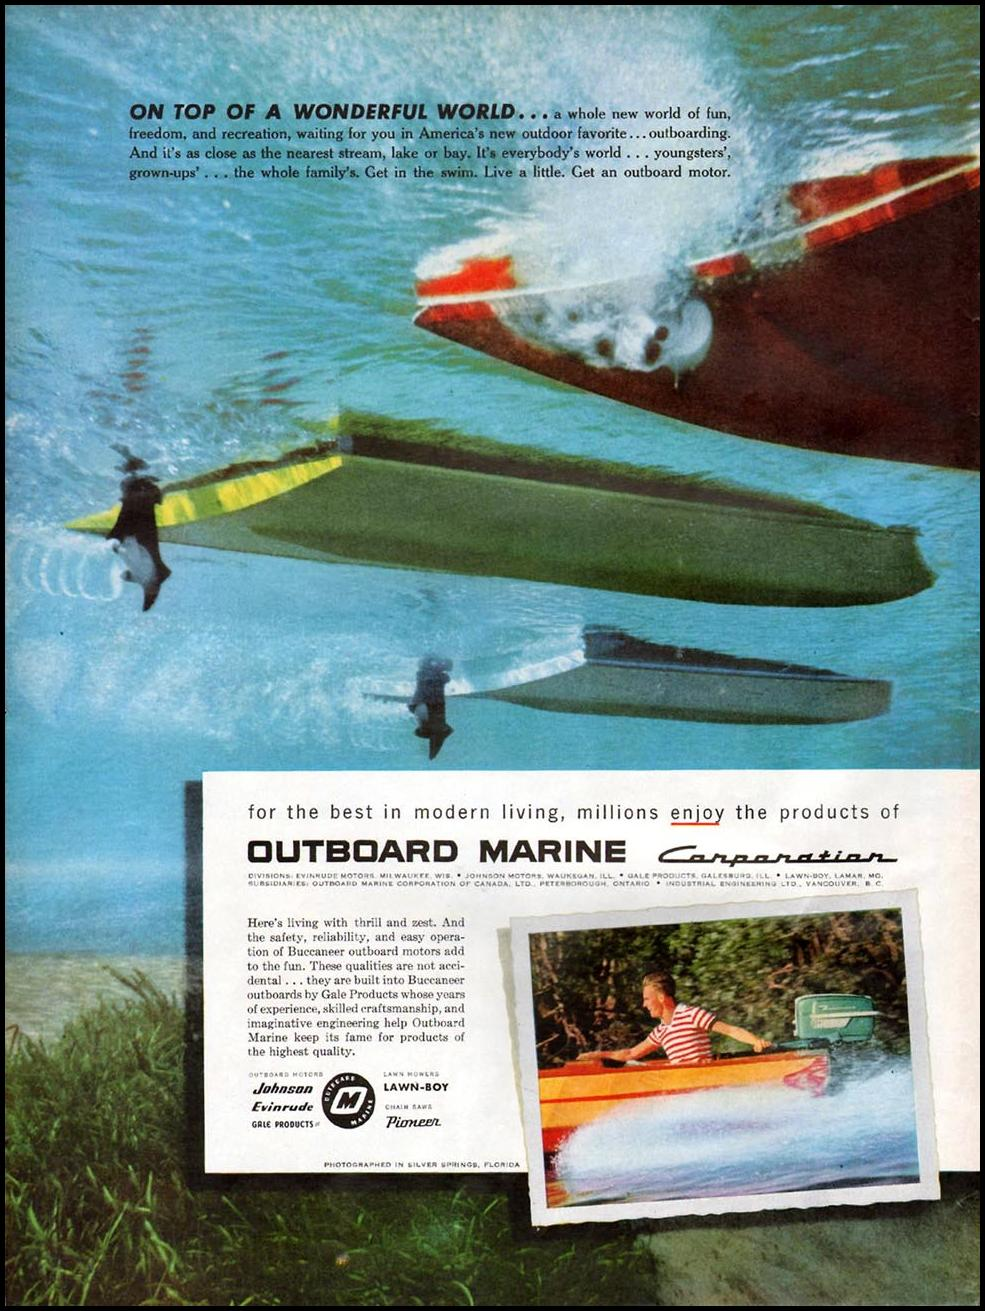 JOHNSON OUTBOARD MOTORS LIFE 07/01/1957 p. 112